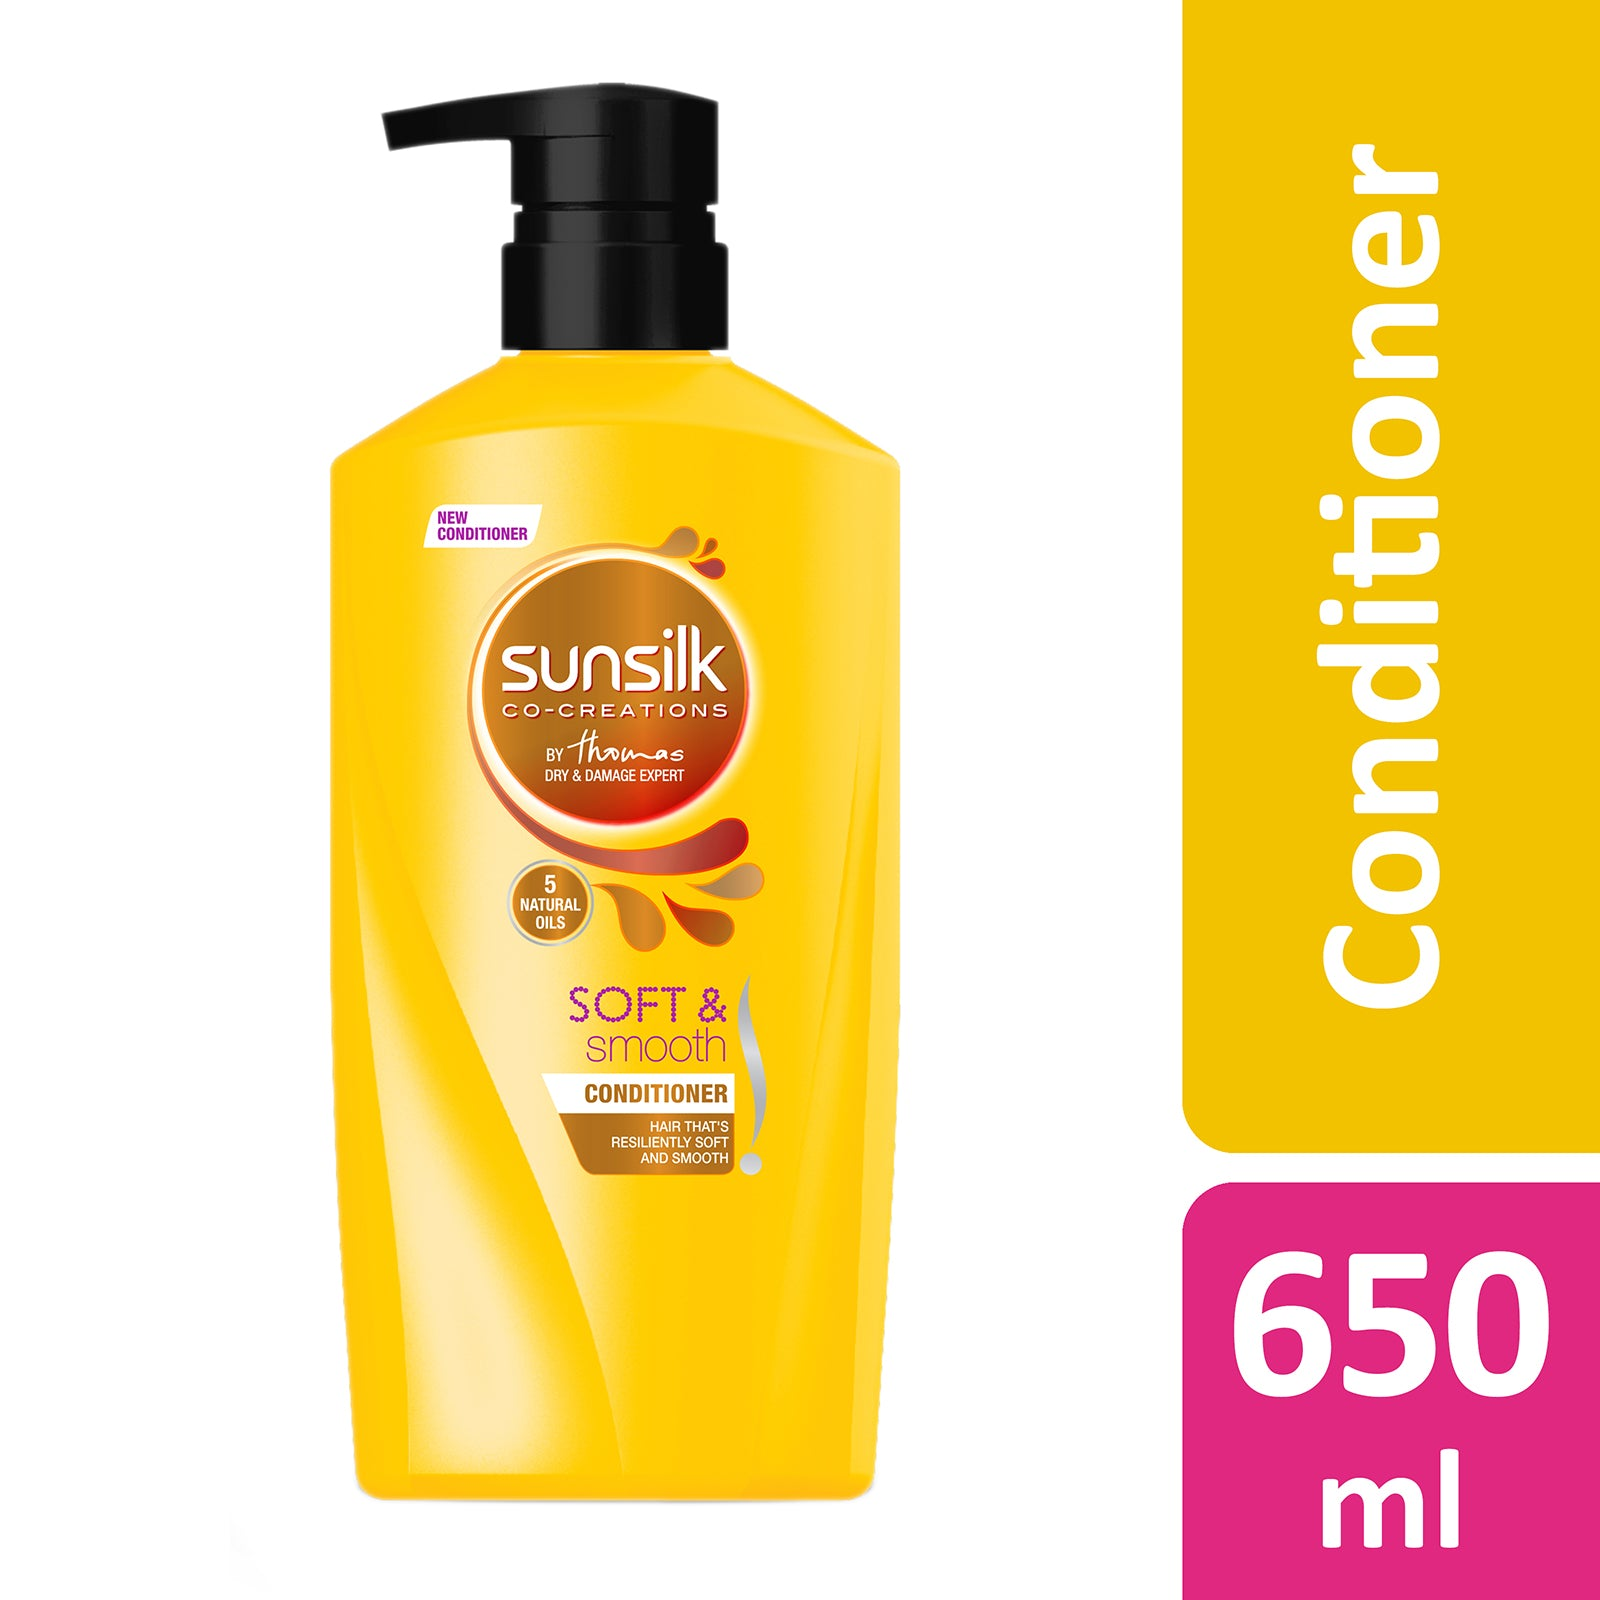 Sunsilk Nourishing Soft And Smooth Conditioner 650 ml